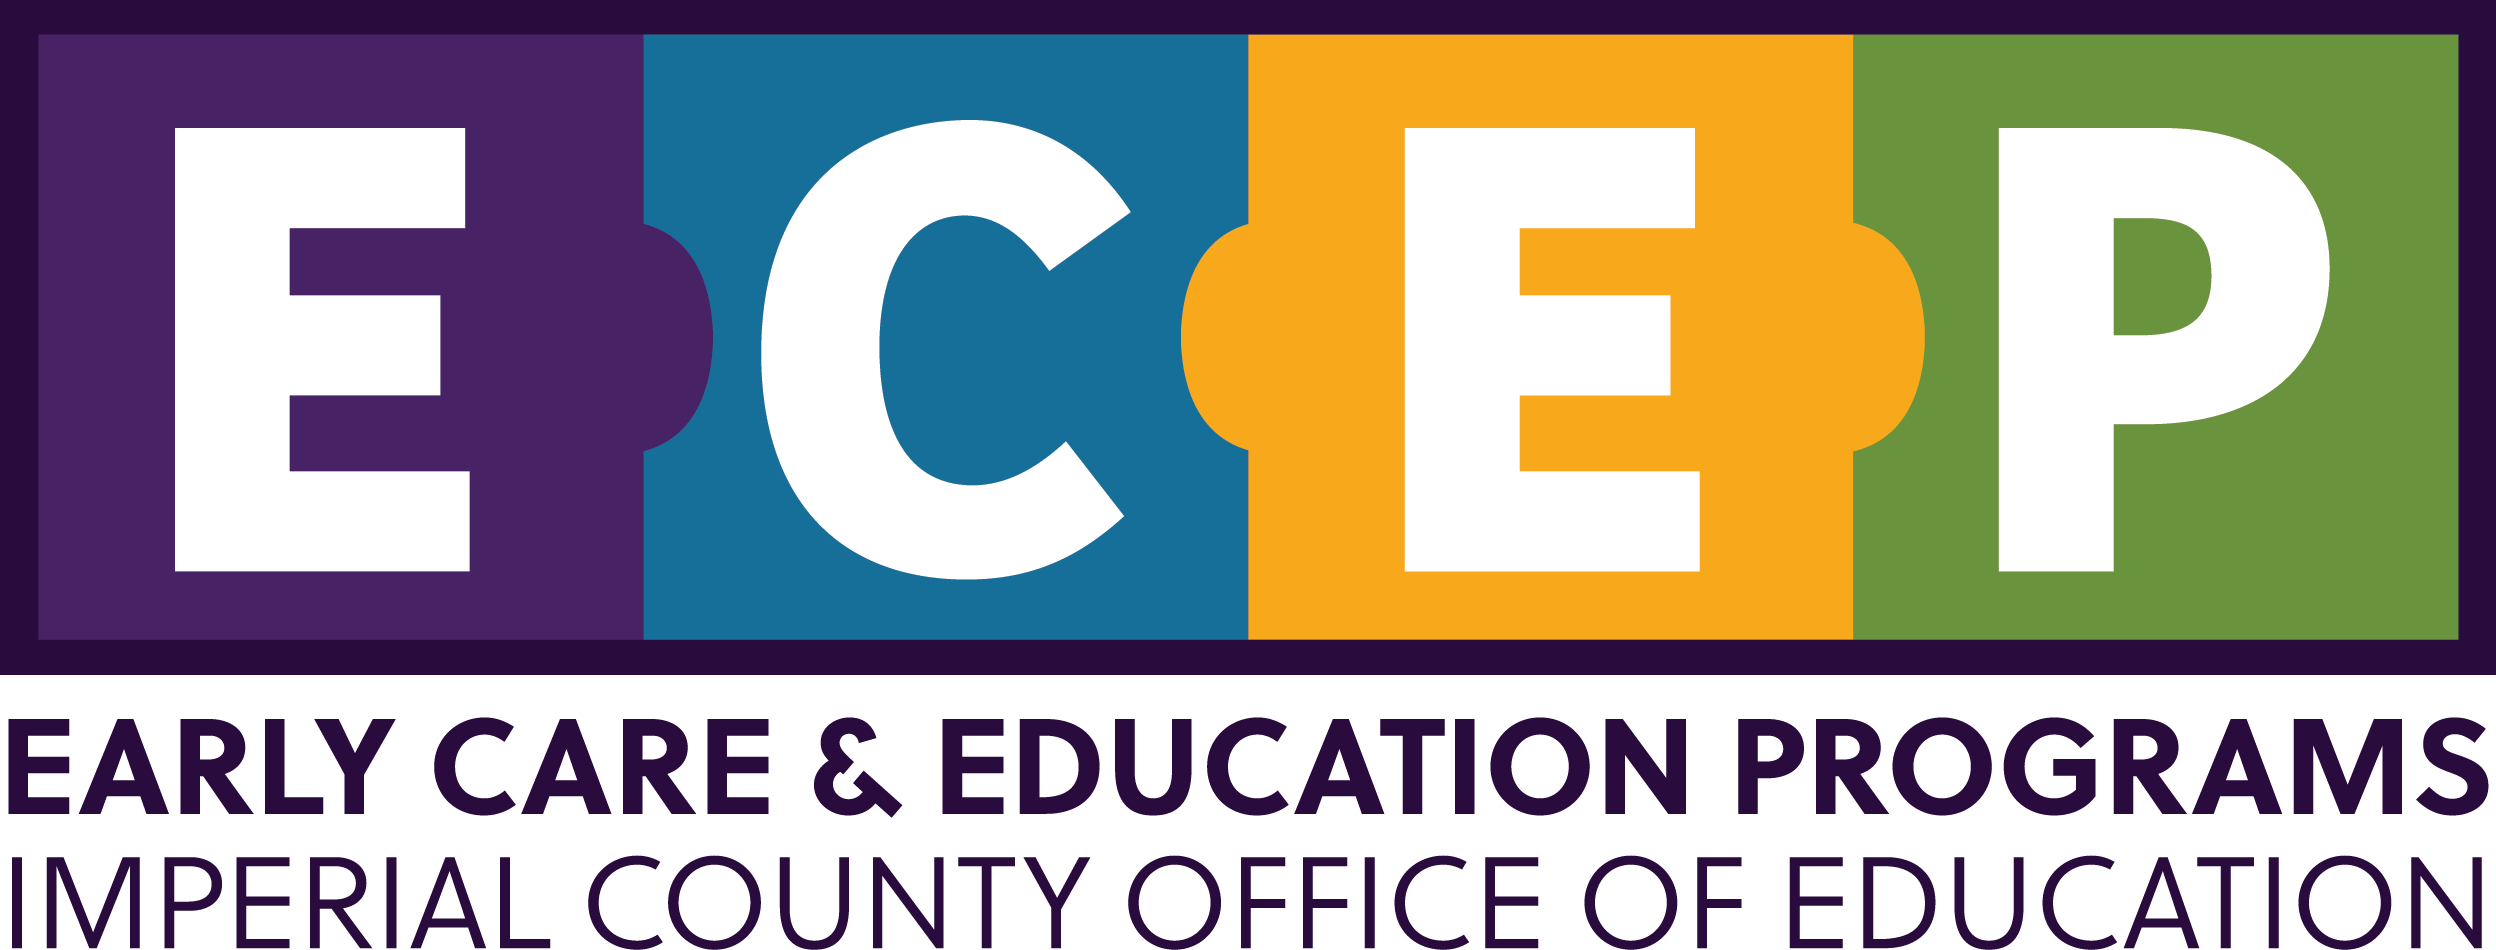 Early care and education programs imperial county office of ecep logo 1betcityfo Images